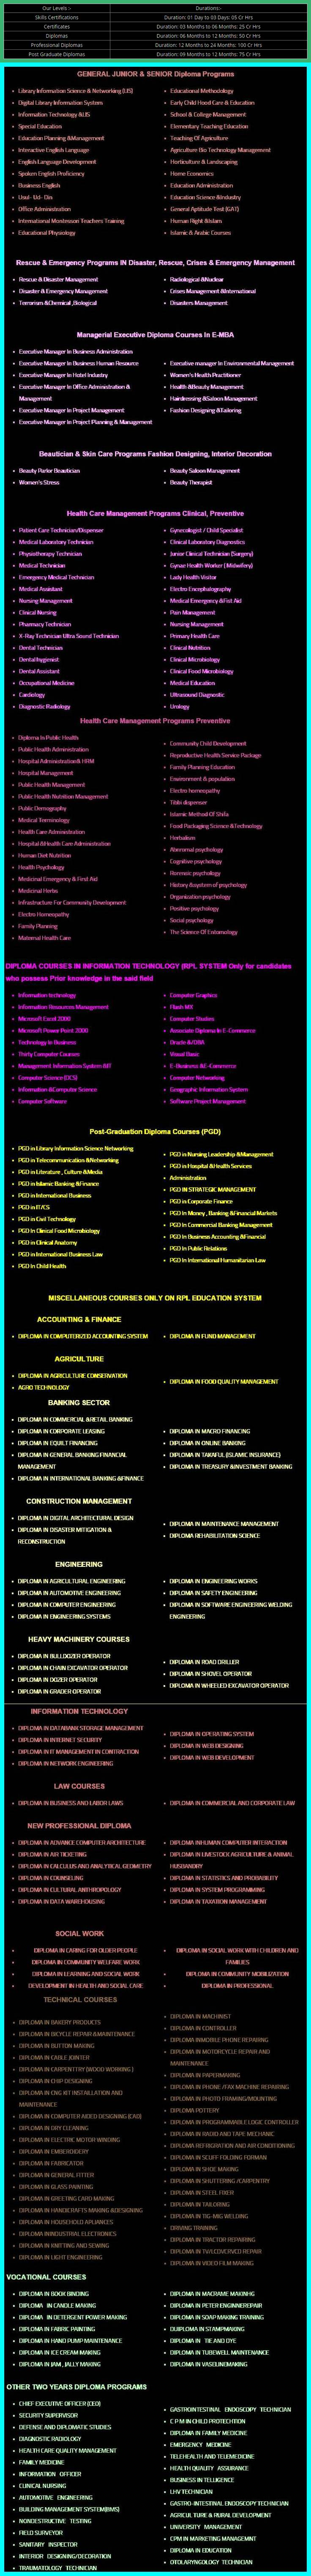 All Skill Development Council SDC Courses- Benefits, Career & Scope